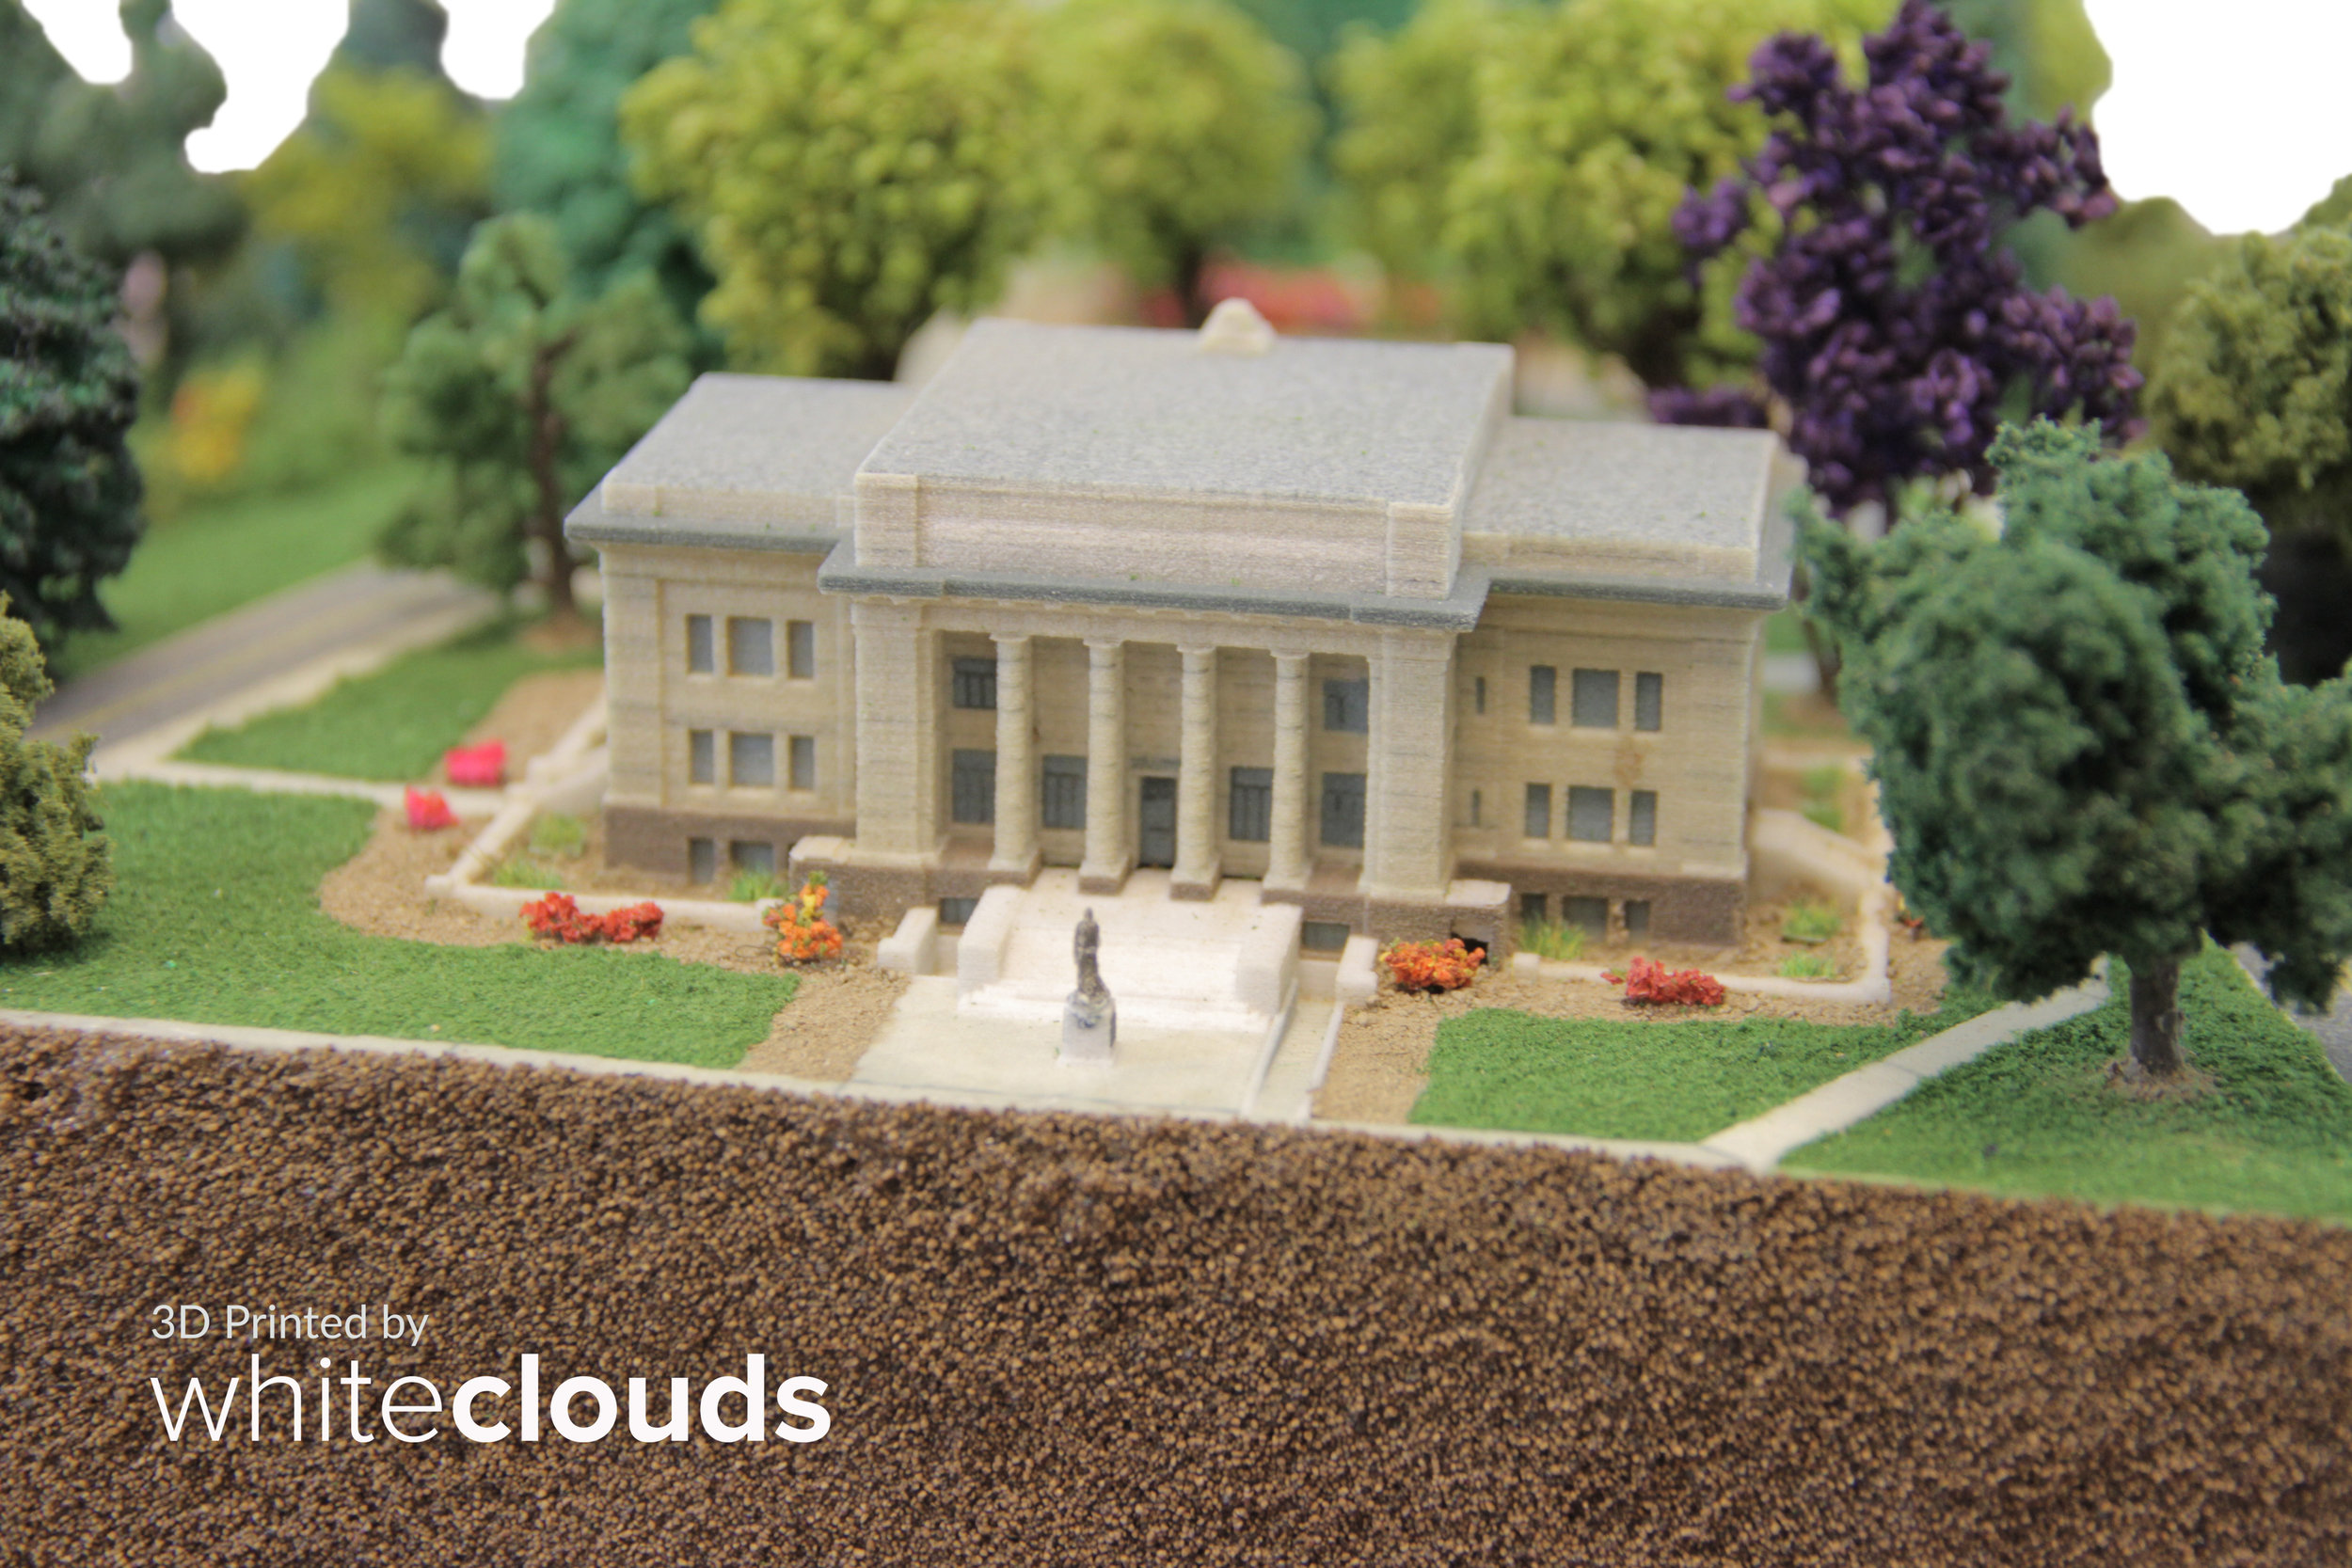 3D-Printed-WhiteCloud-Campus-Architectural-BYU-Sales-Model-4.JPG